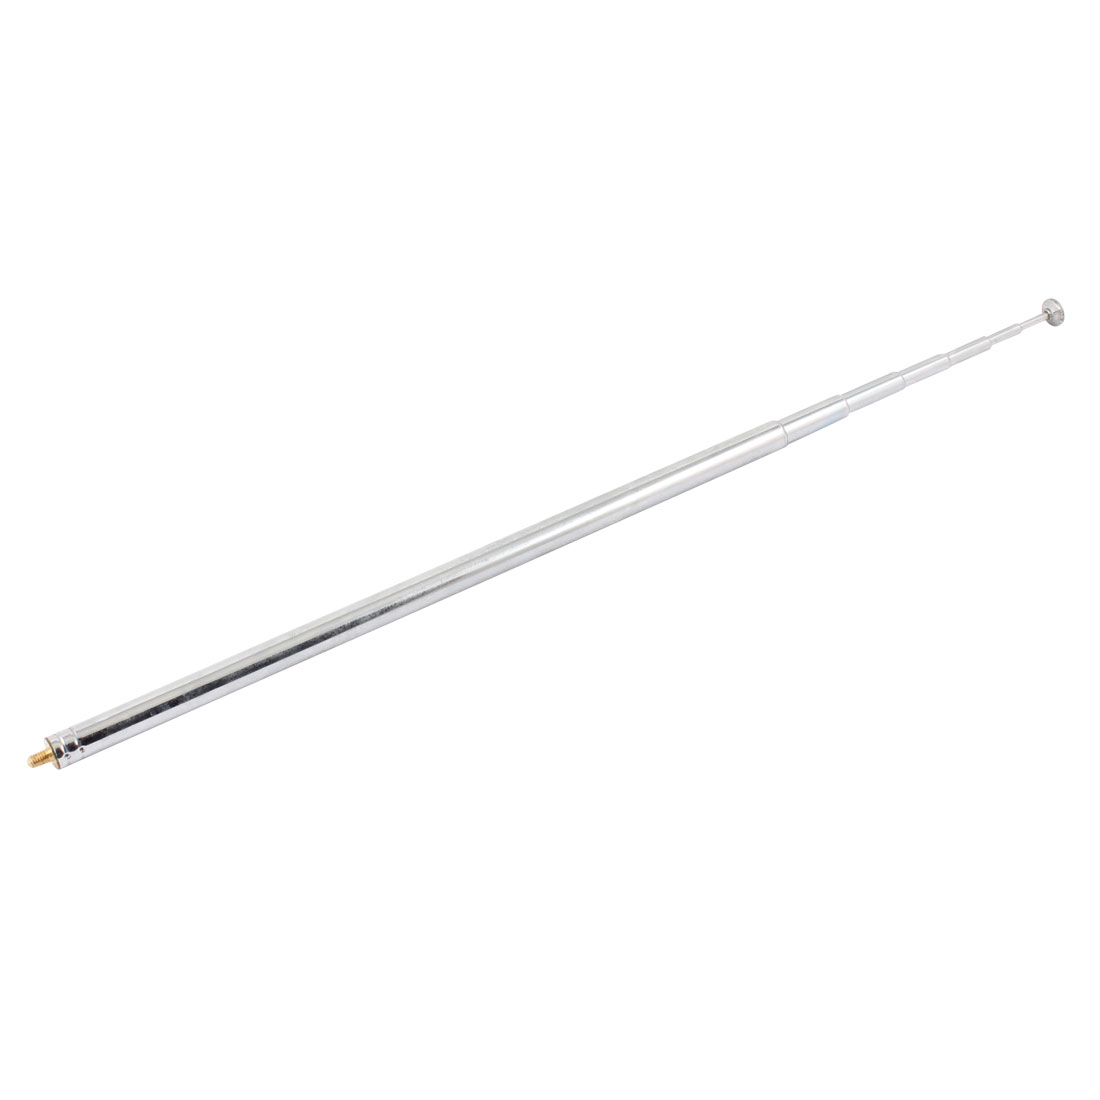 Steel Rod 7 Sections TV Telescopic Antenna Aerial 110cm Long